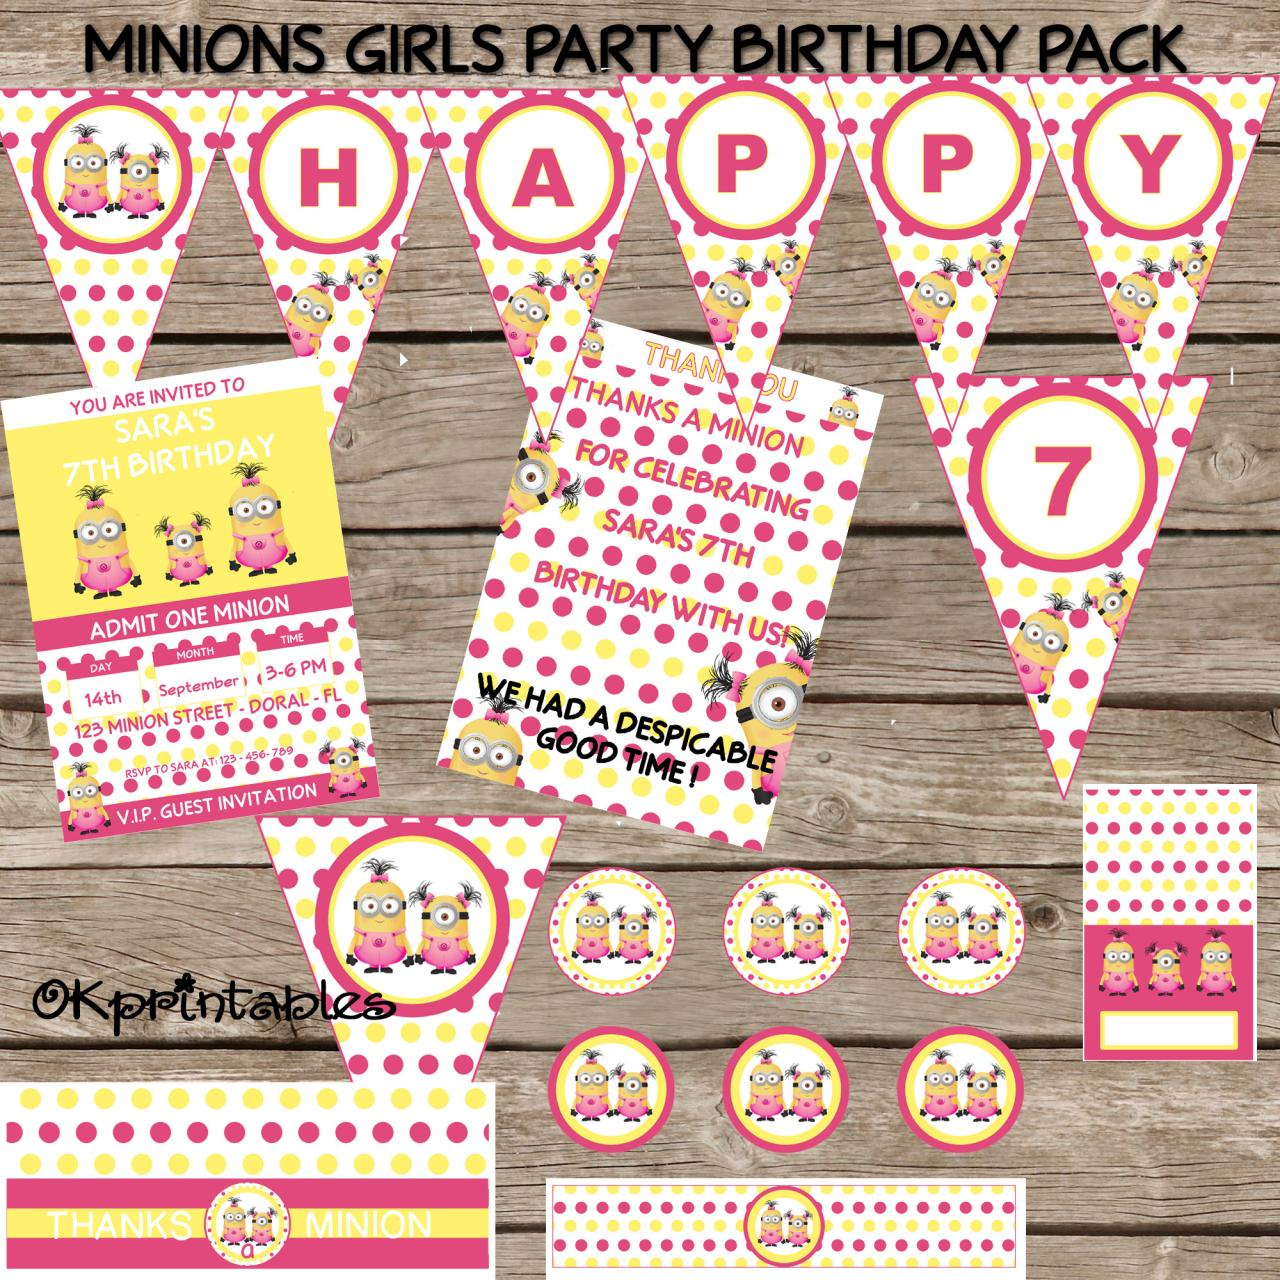 Minion Birthday Party Pack - Minion Girl Birthday - Personalized Printable Girl Minion pack- Minion Party diy - Girl Party Minion